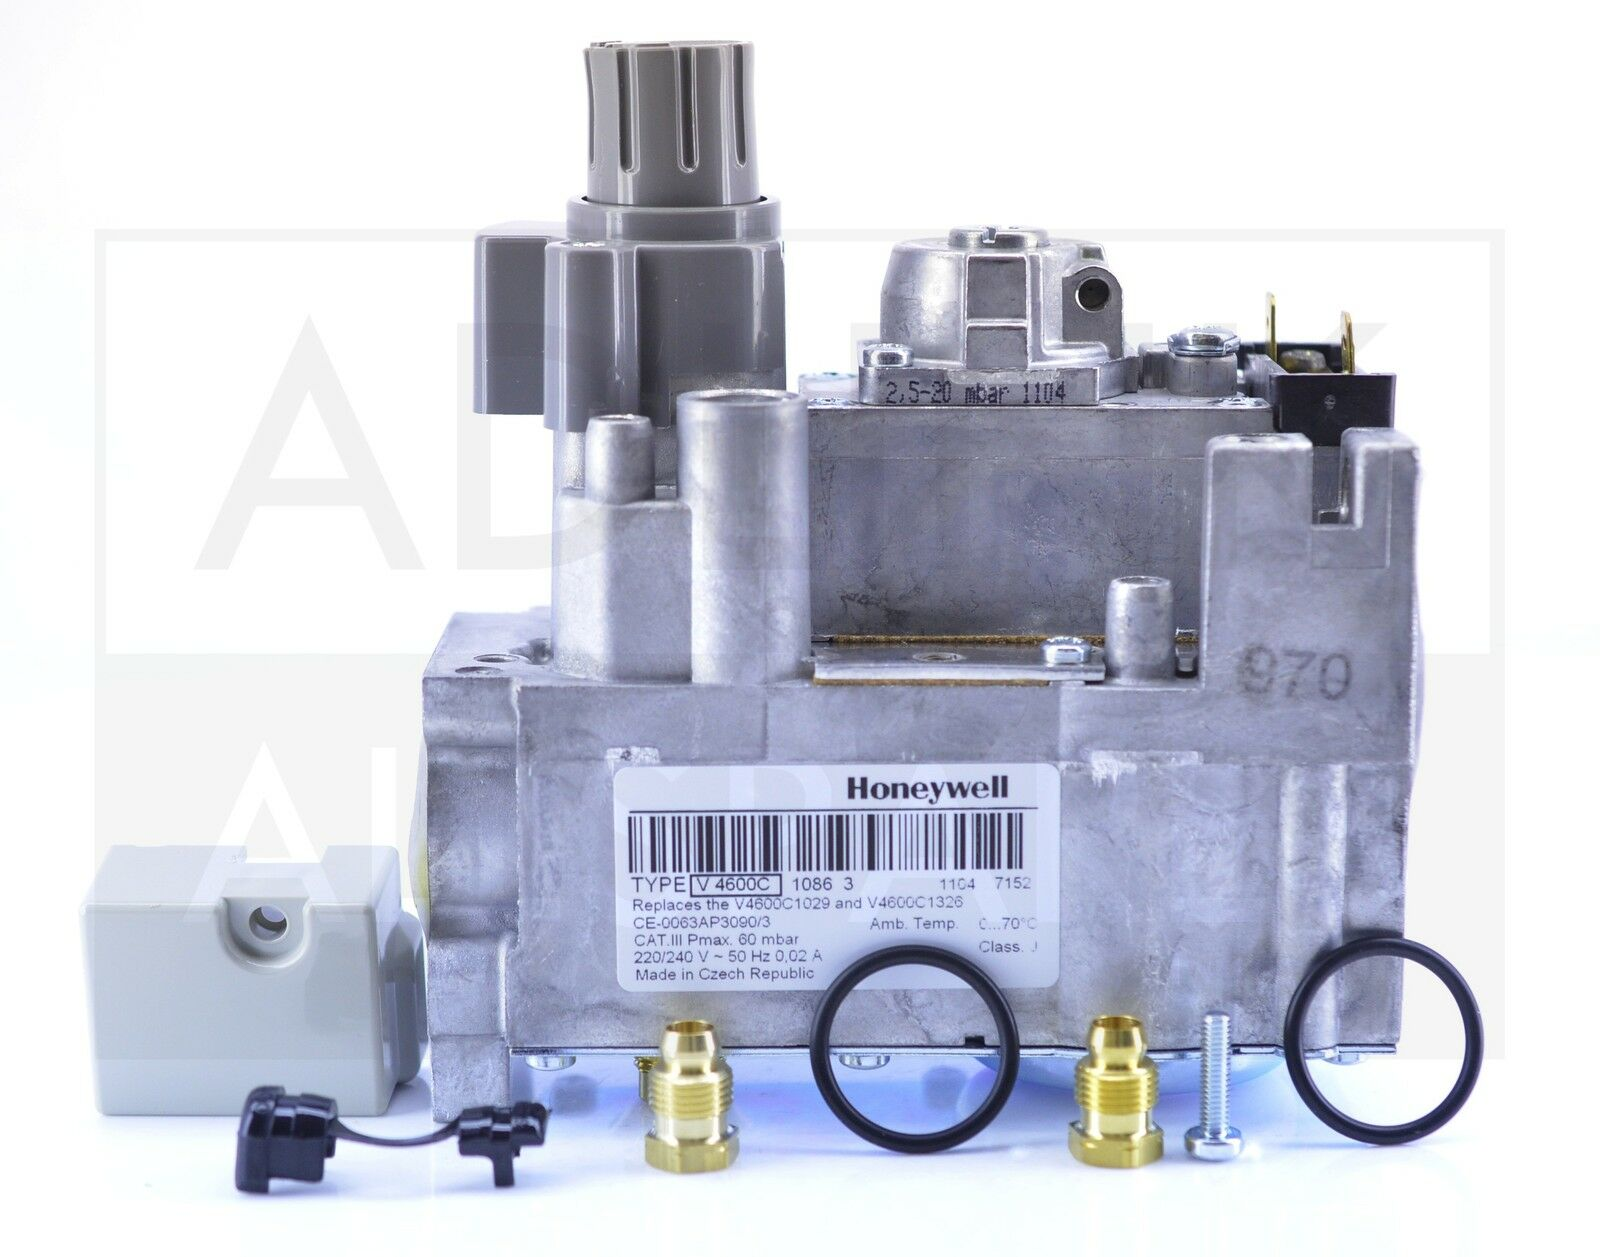 Potterton Kingfisher Cf40 Cf45 Cf50 Cf55 Cf60 Cf80 Cf125 Boiler Gas Couk O View Topic Testing Honeywell Zone Valve And Thermostat 1 Of 5free Shipping See More